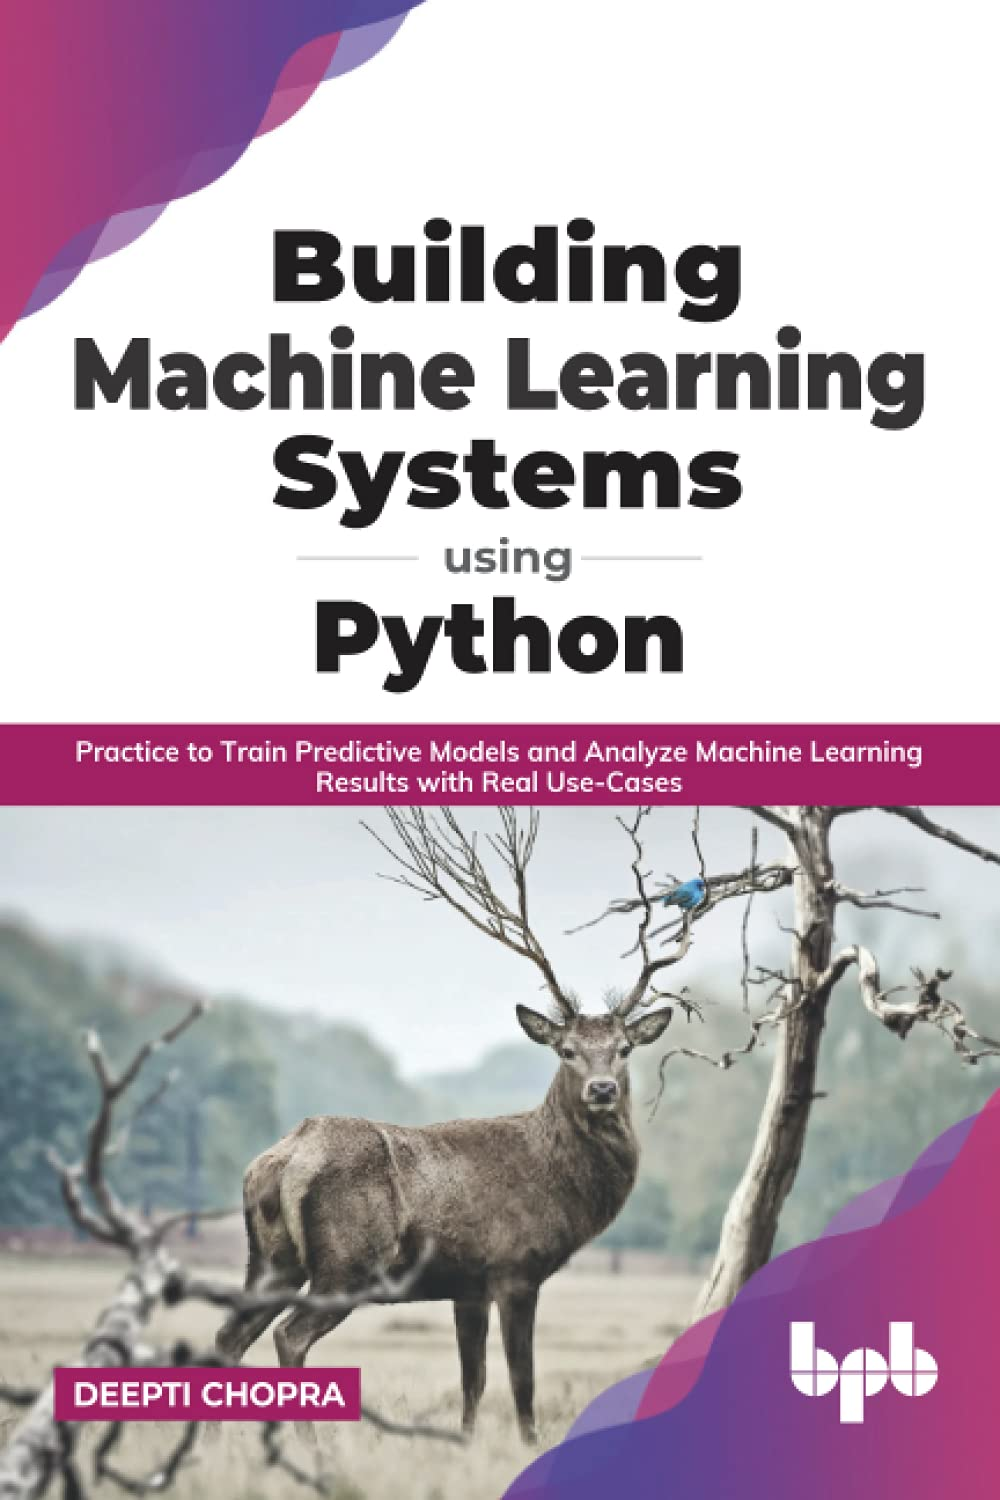 Building Machine Learning Systems Using Python: Practice to Train Predictive Models and Analyze Machine Learning Results with Real Use-Cases